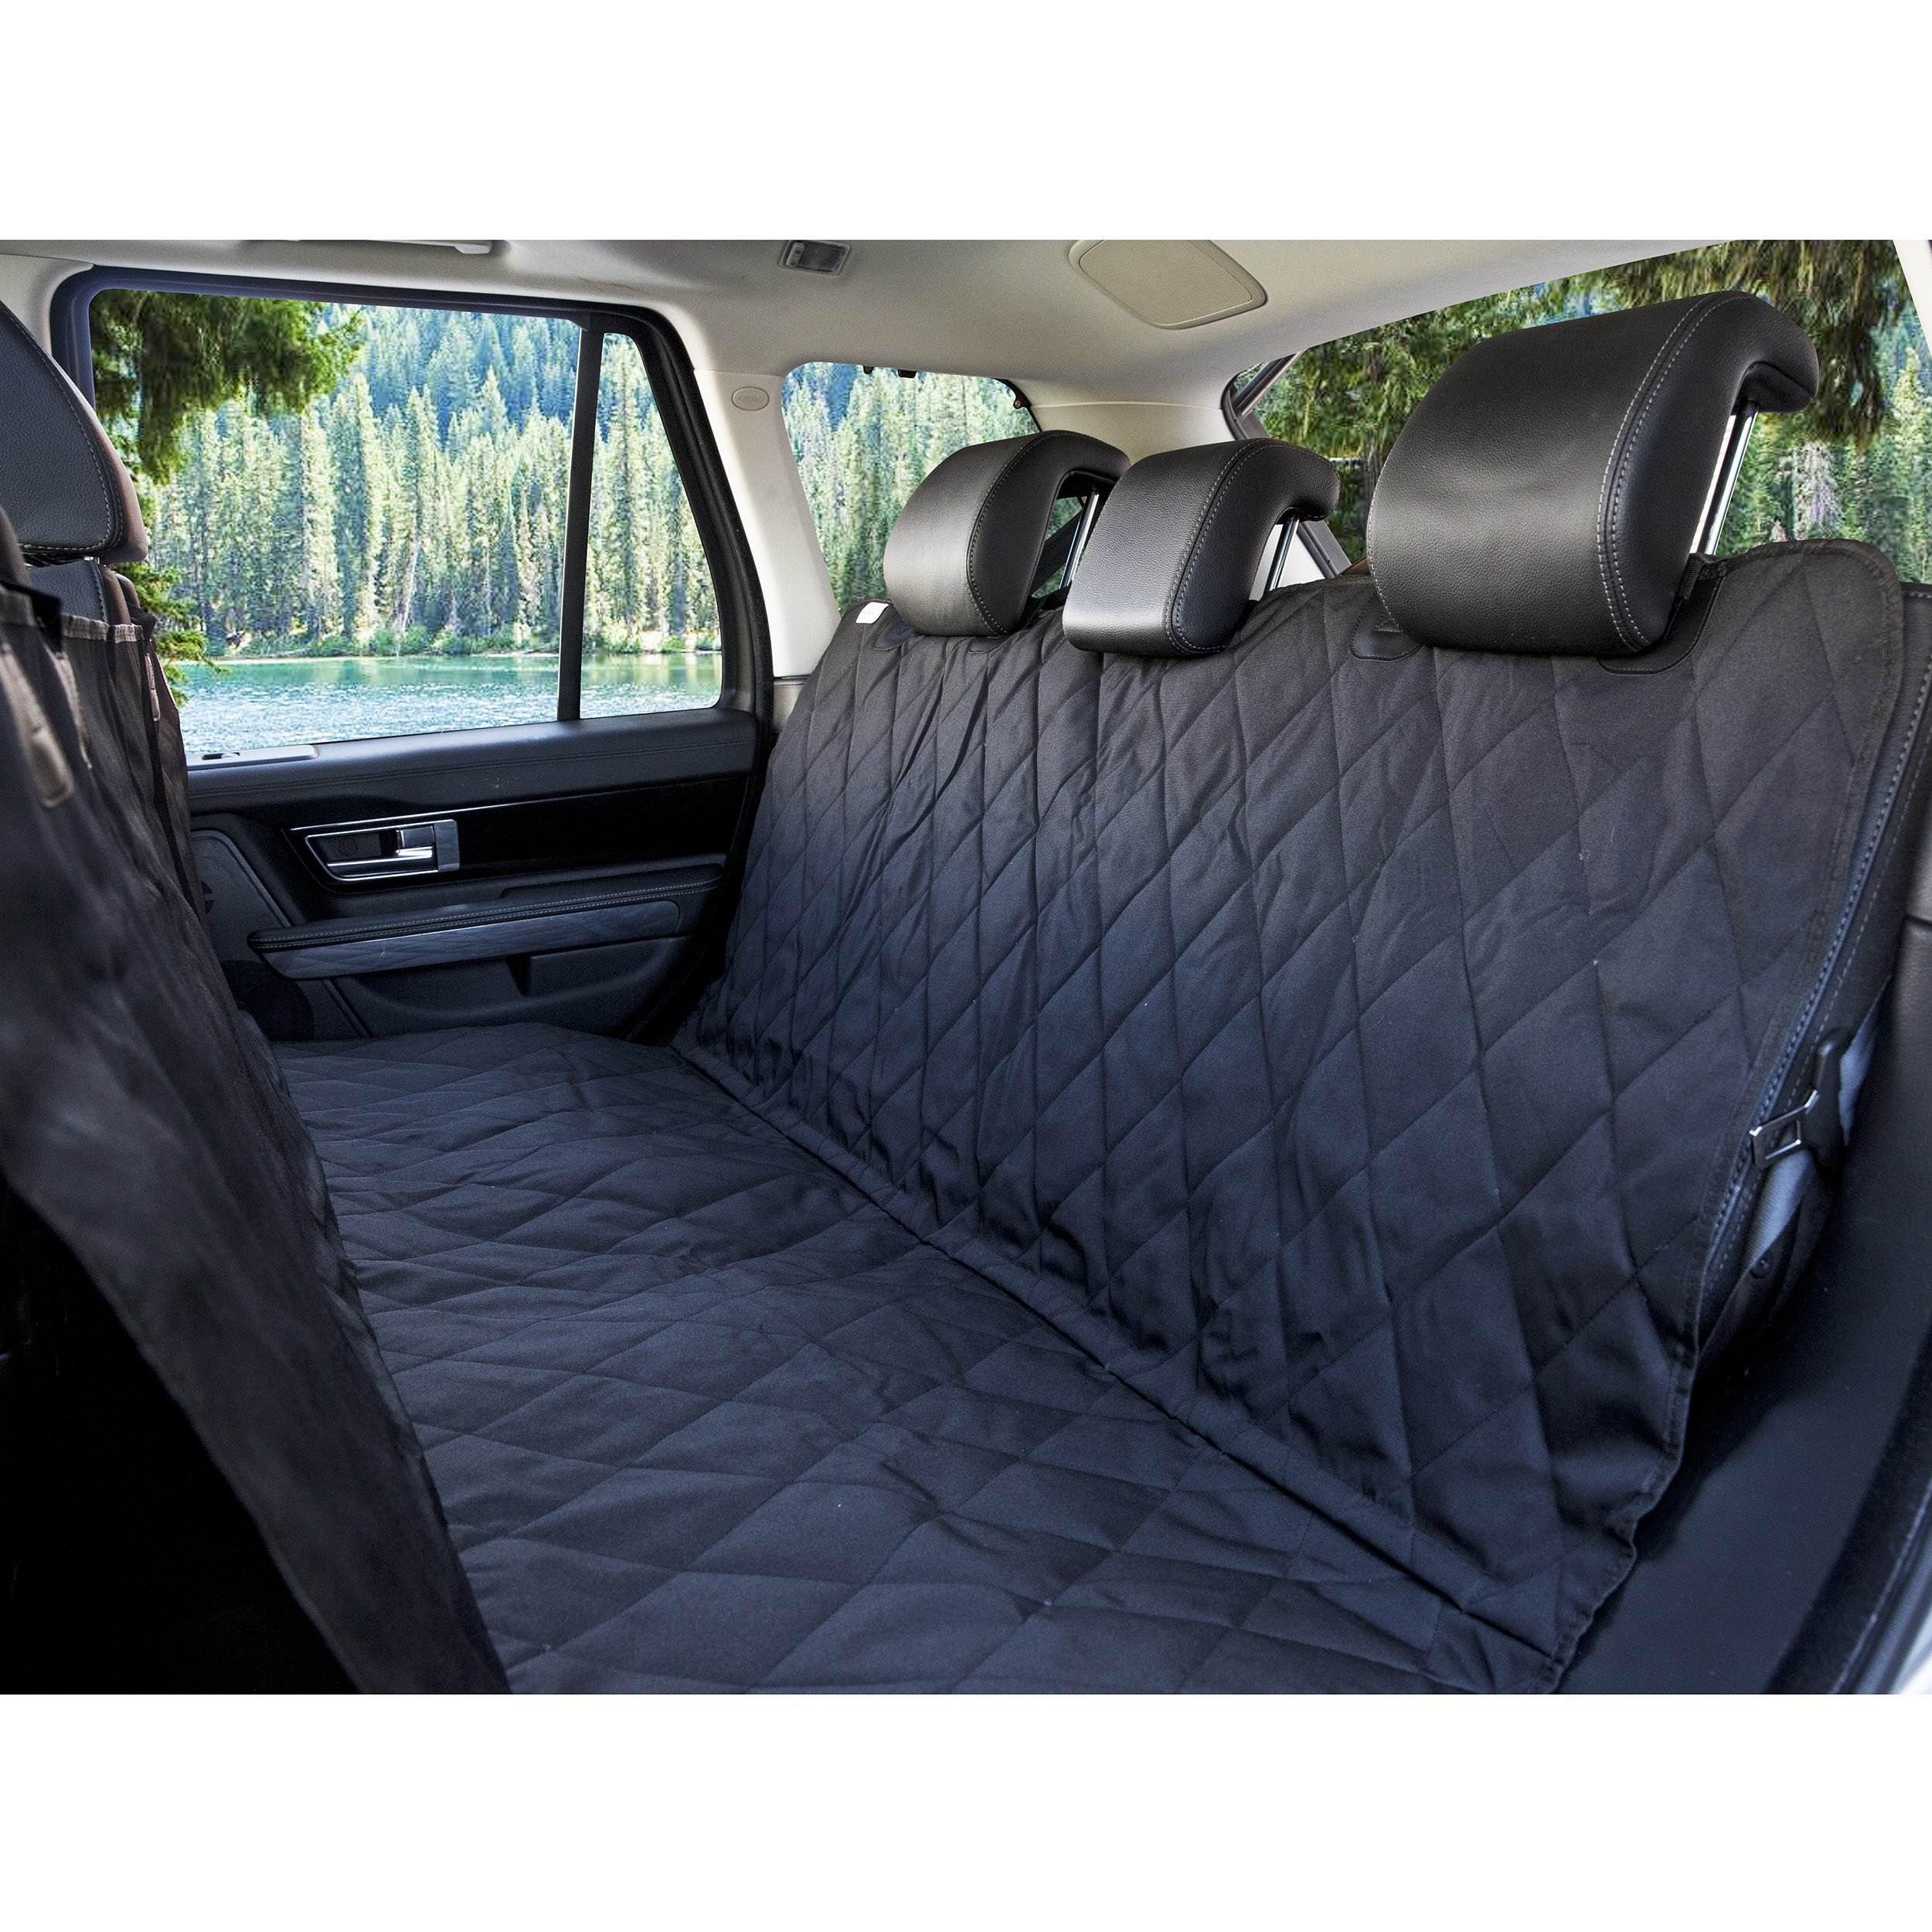 BarksBar Luxury Pet Car Seat Cover with Seat Anchors for Larger Cars, Trucks, and Suv's - Black, Waterproof & Nonslip Backing (X-Large, Black) by BarksBar